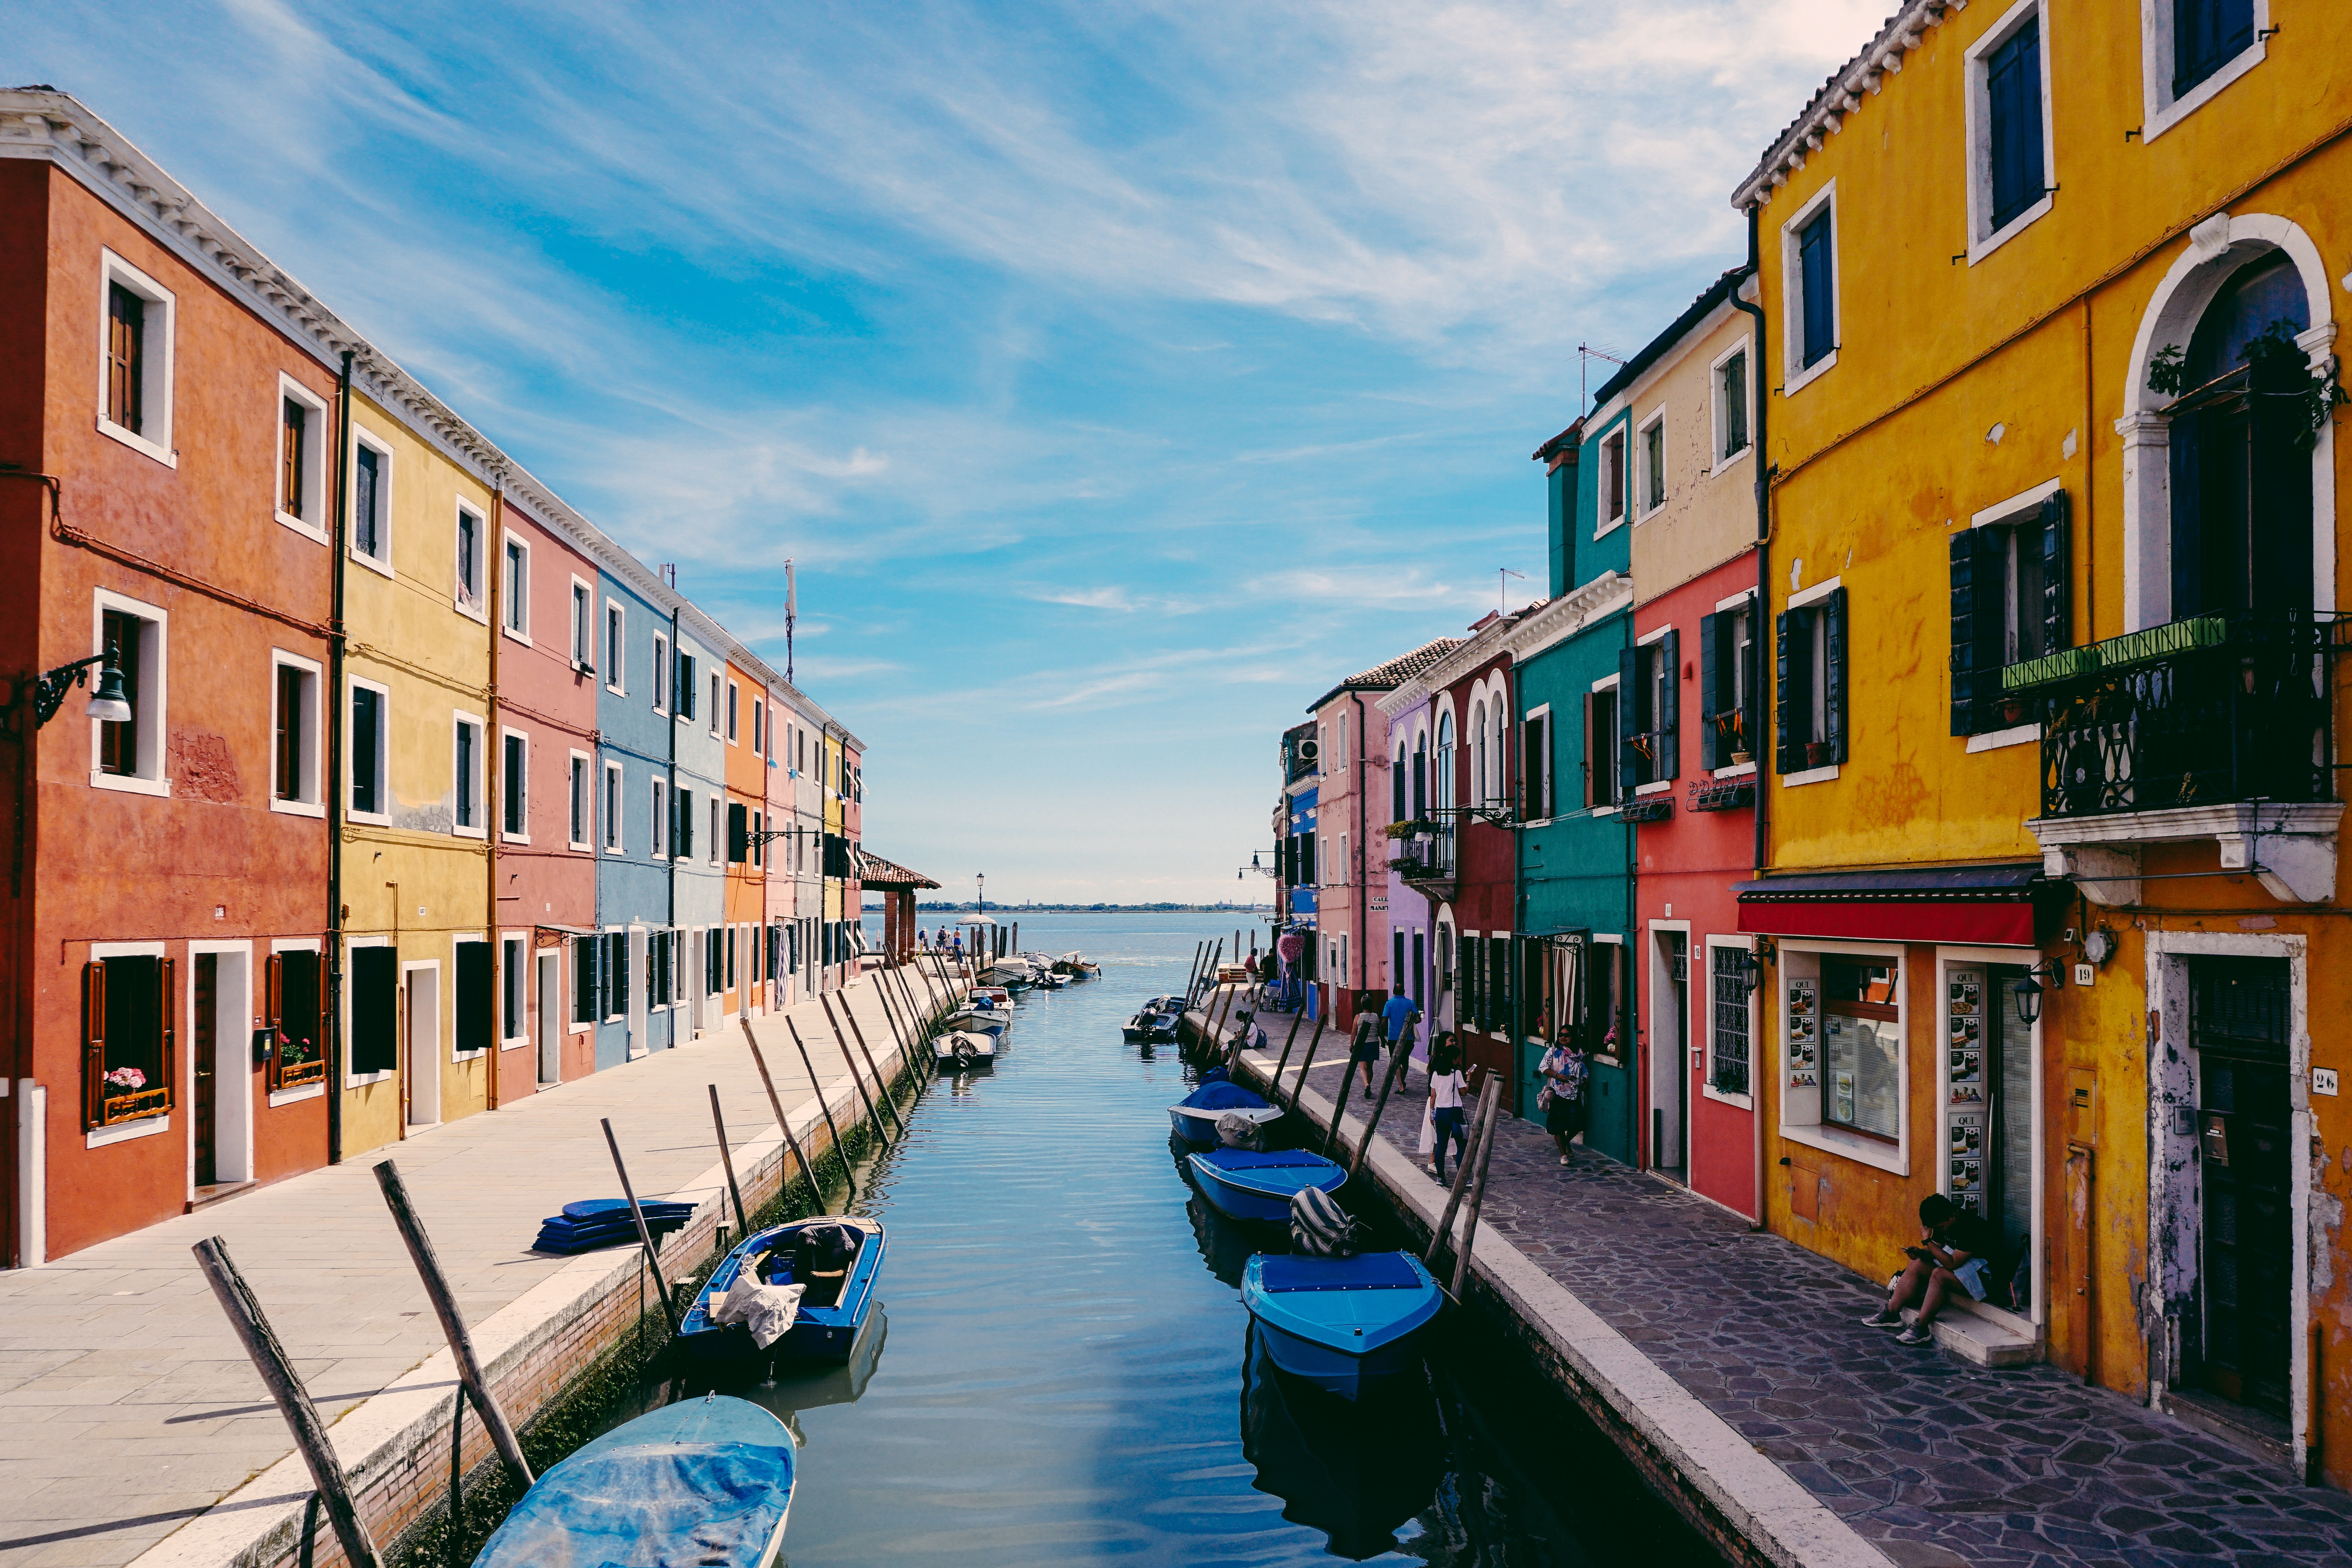 An city canal lined with colorful houses in Burano